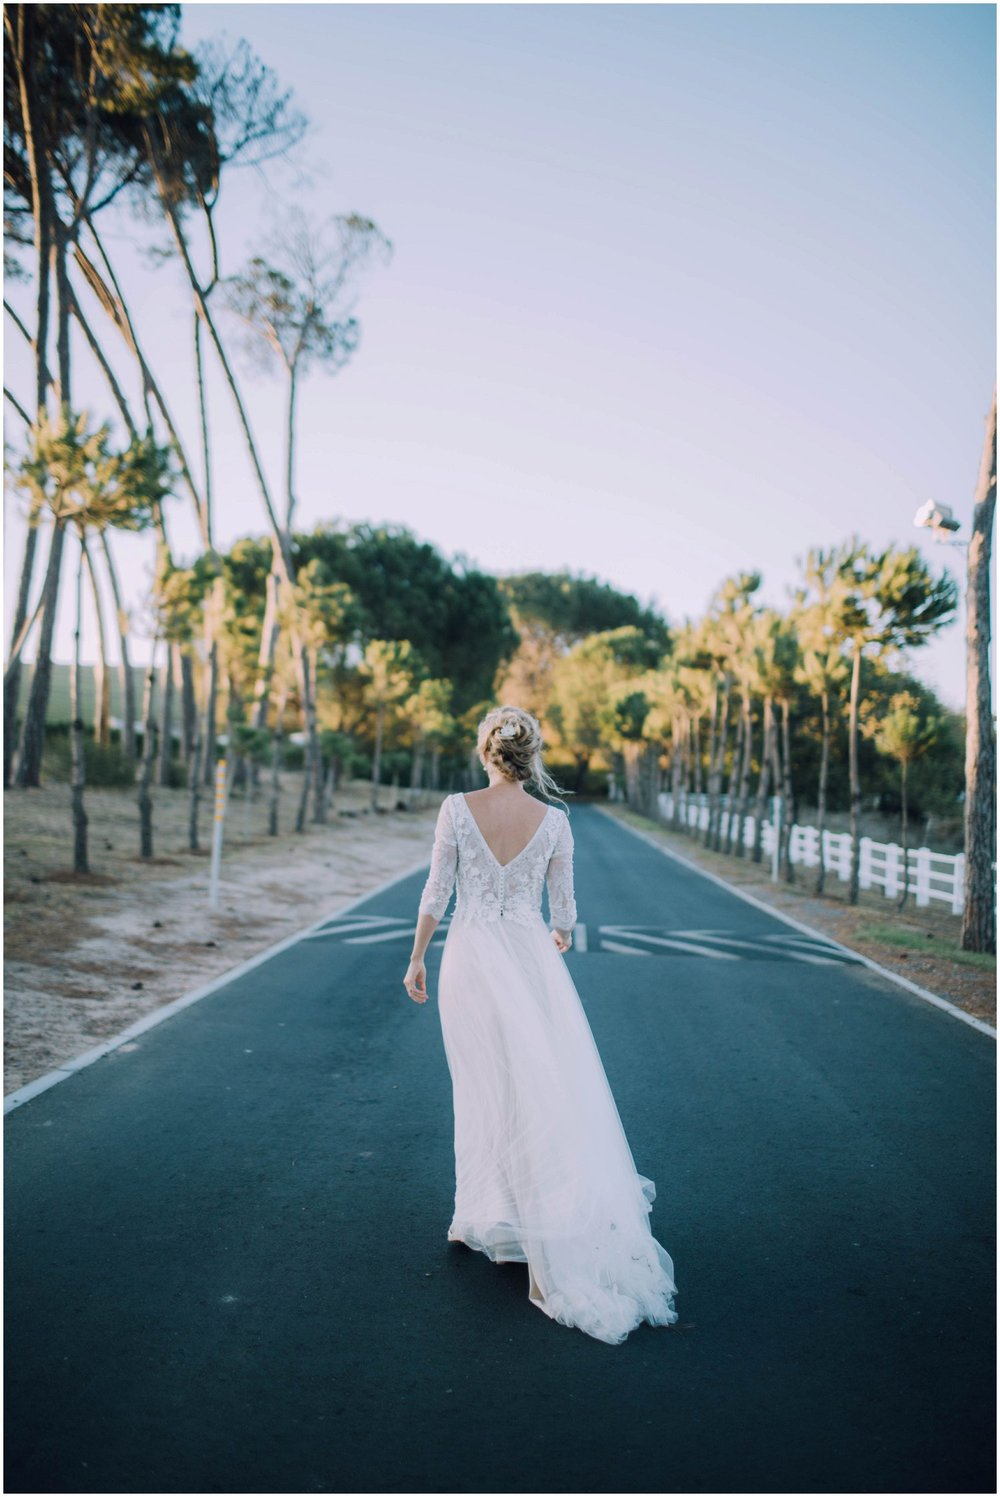 Top Wedding Photographer Cape Town South Africa Artistic Creative Documentary Wedding Photography Rue Kruger_0768.jpg